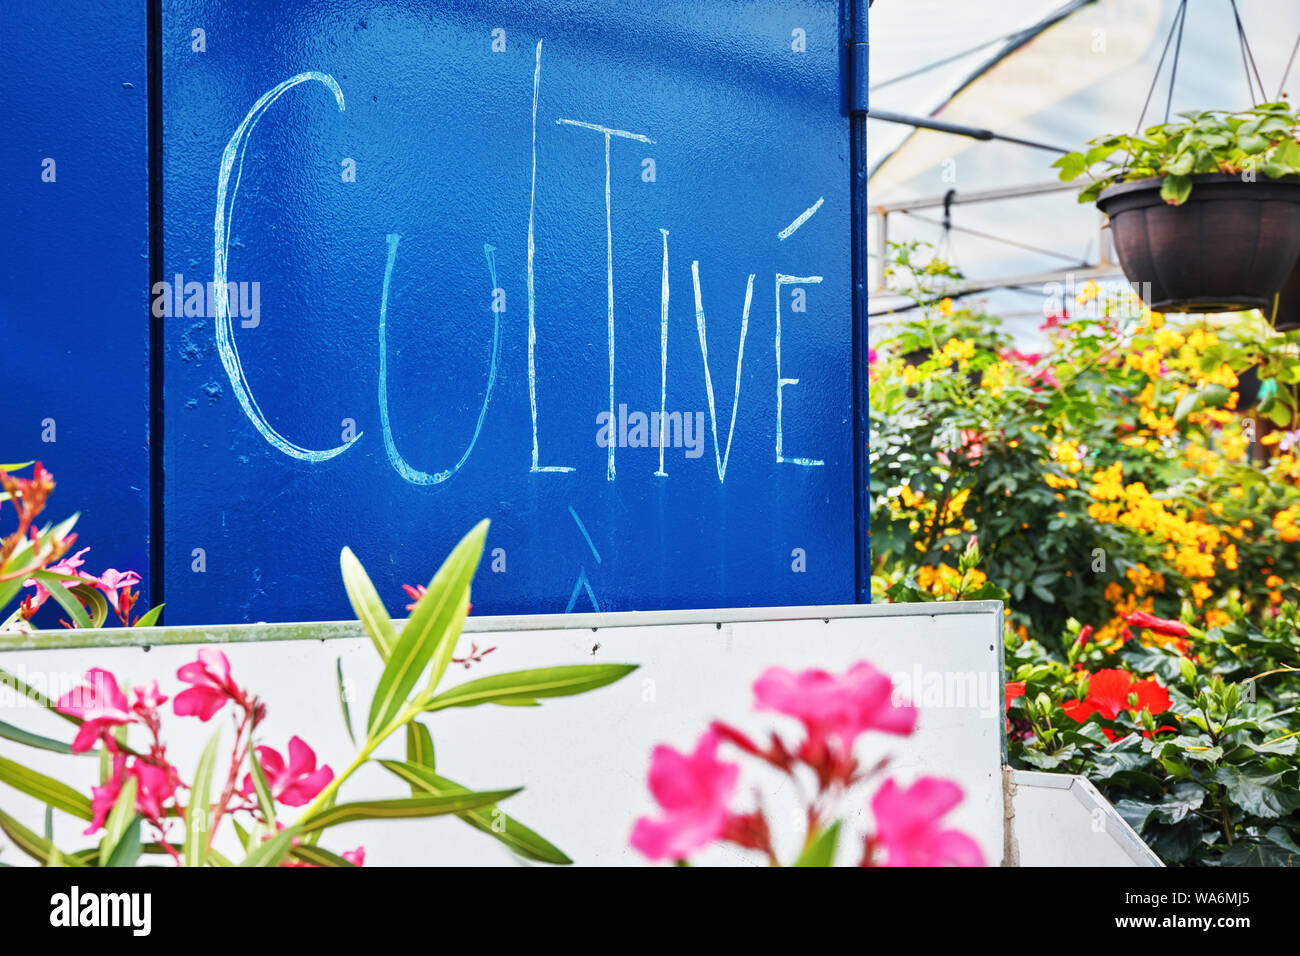 The word cultivate written in French in a flower market greeenhouse Stock Photo